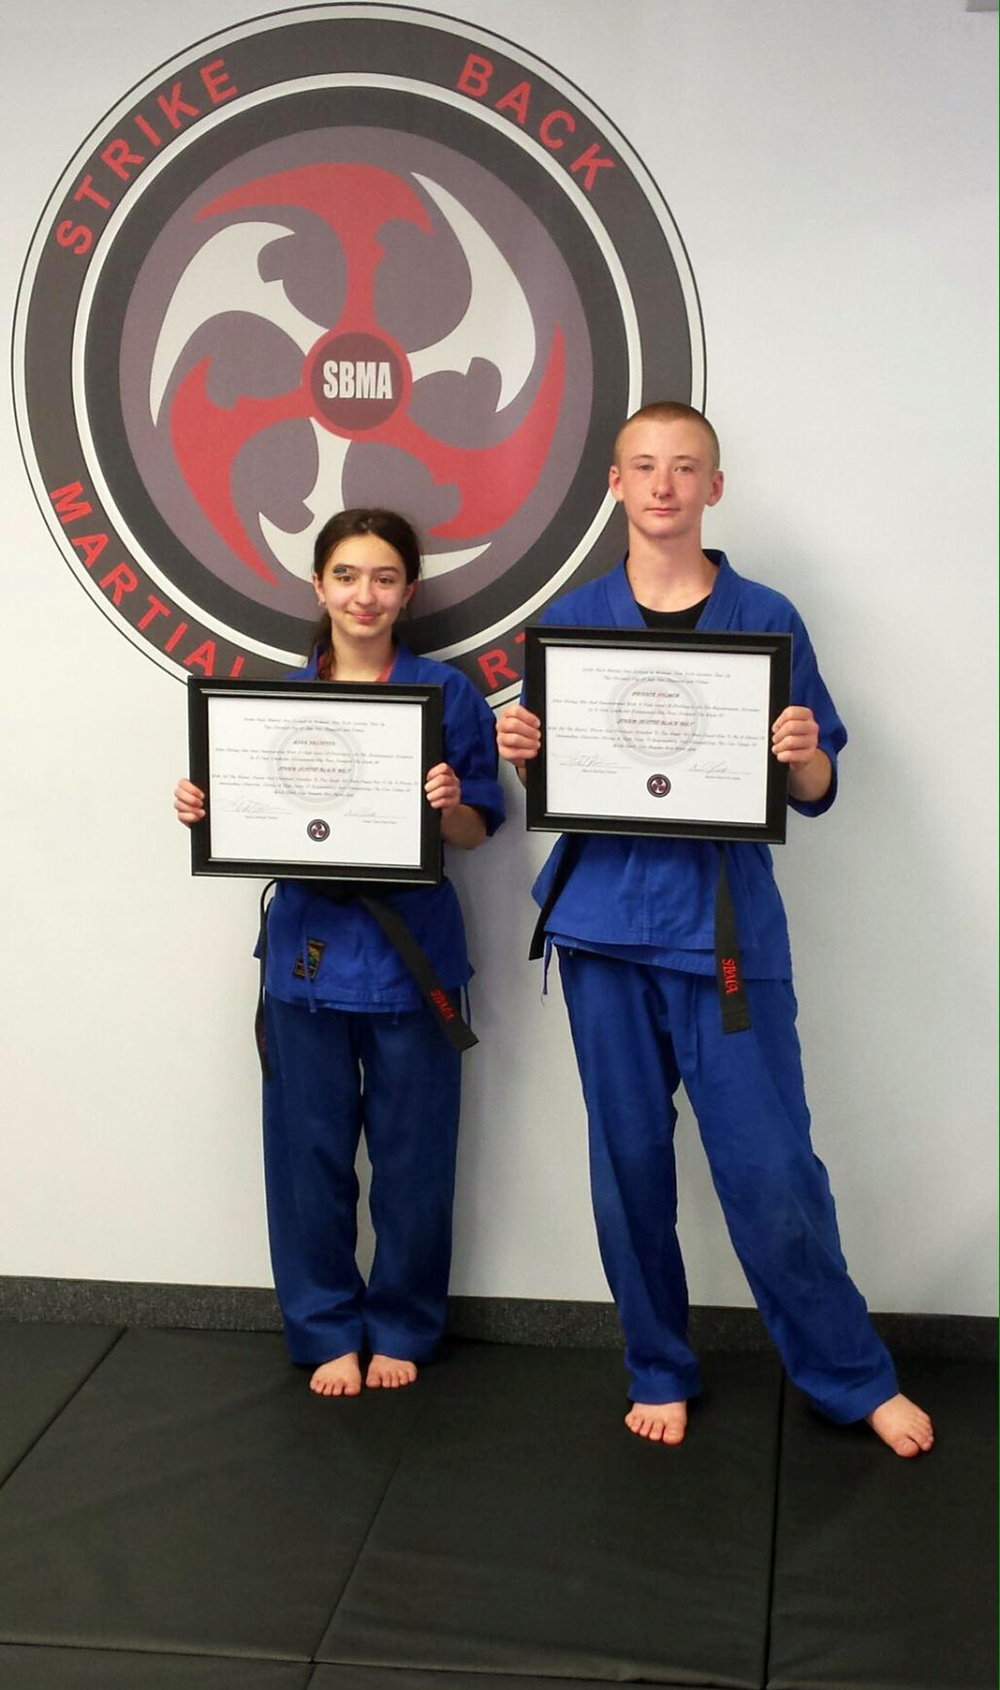 07112015 black belts p1a.JPG